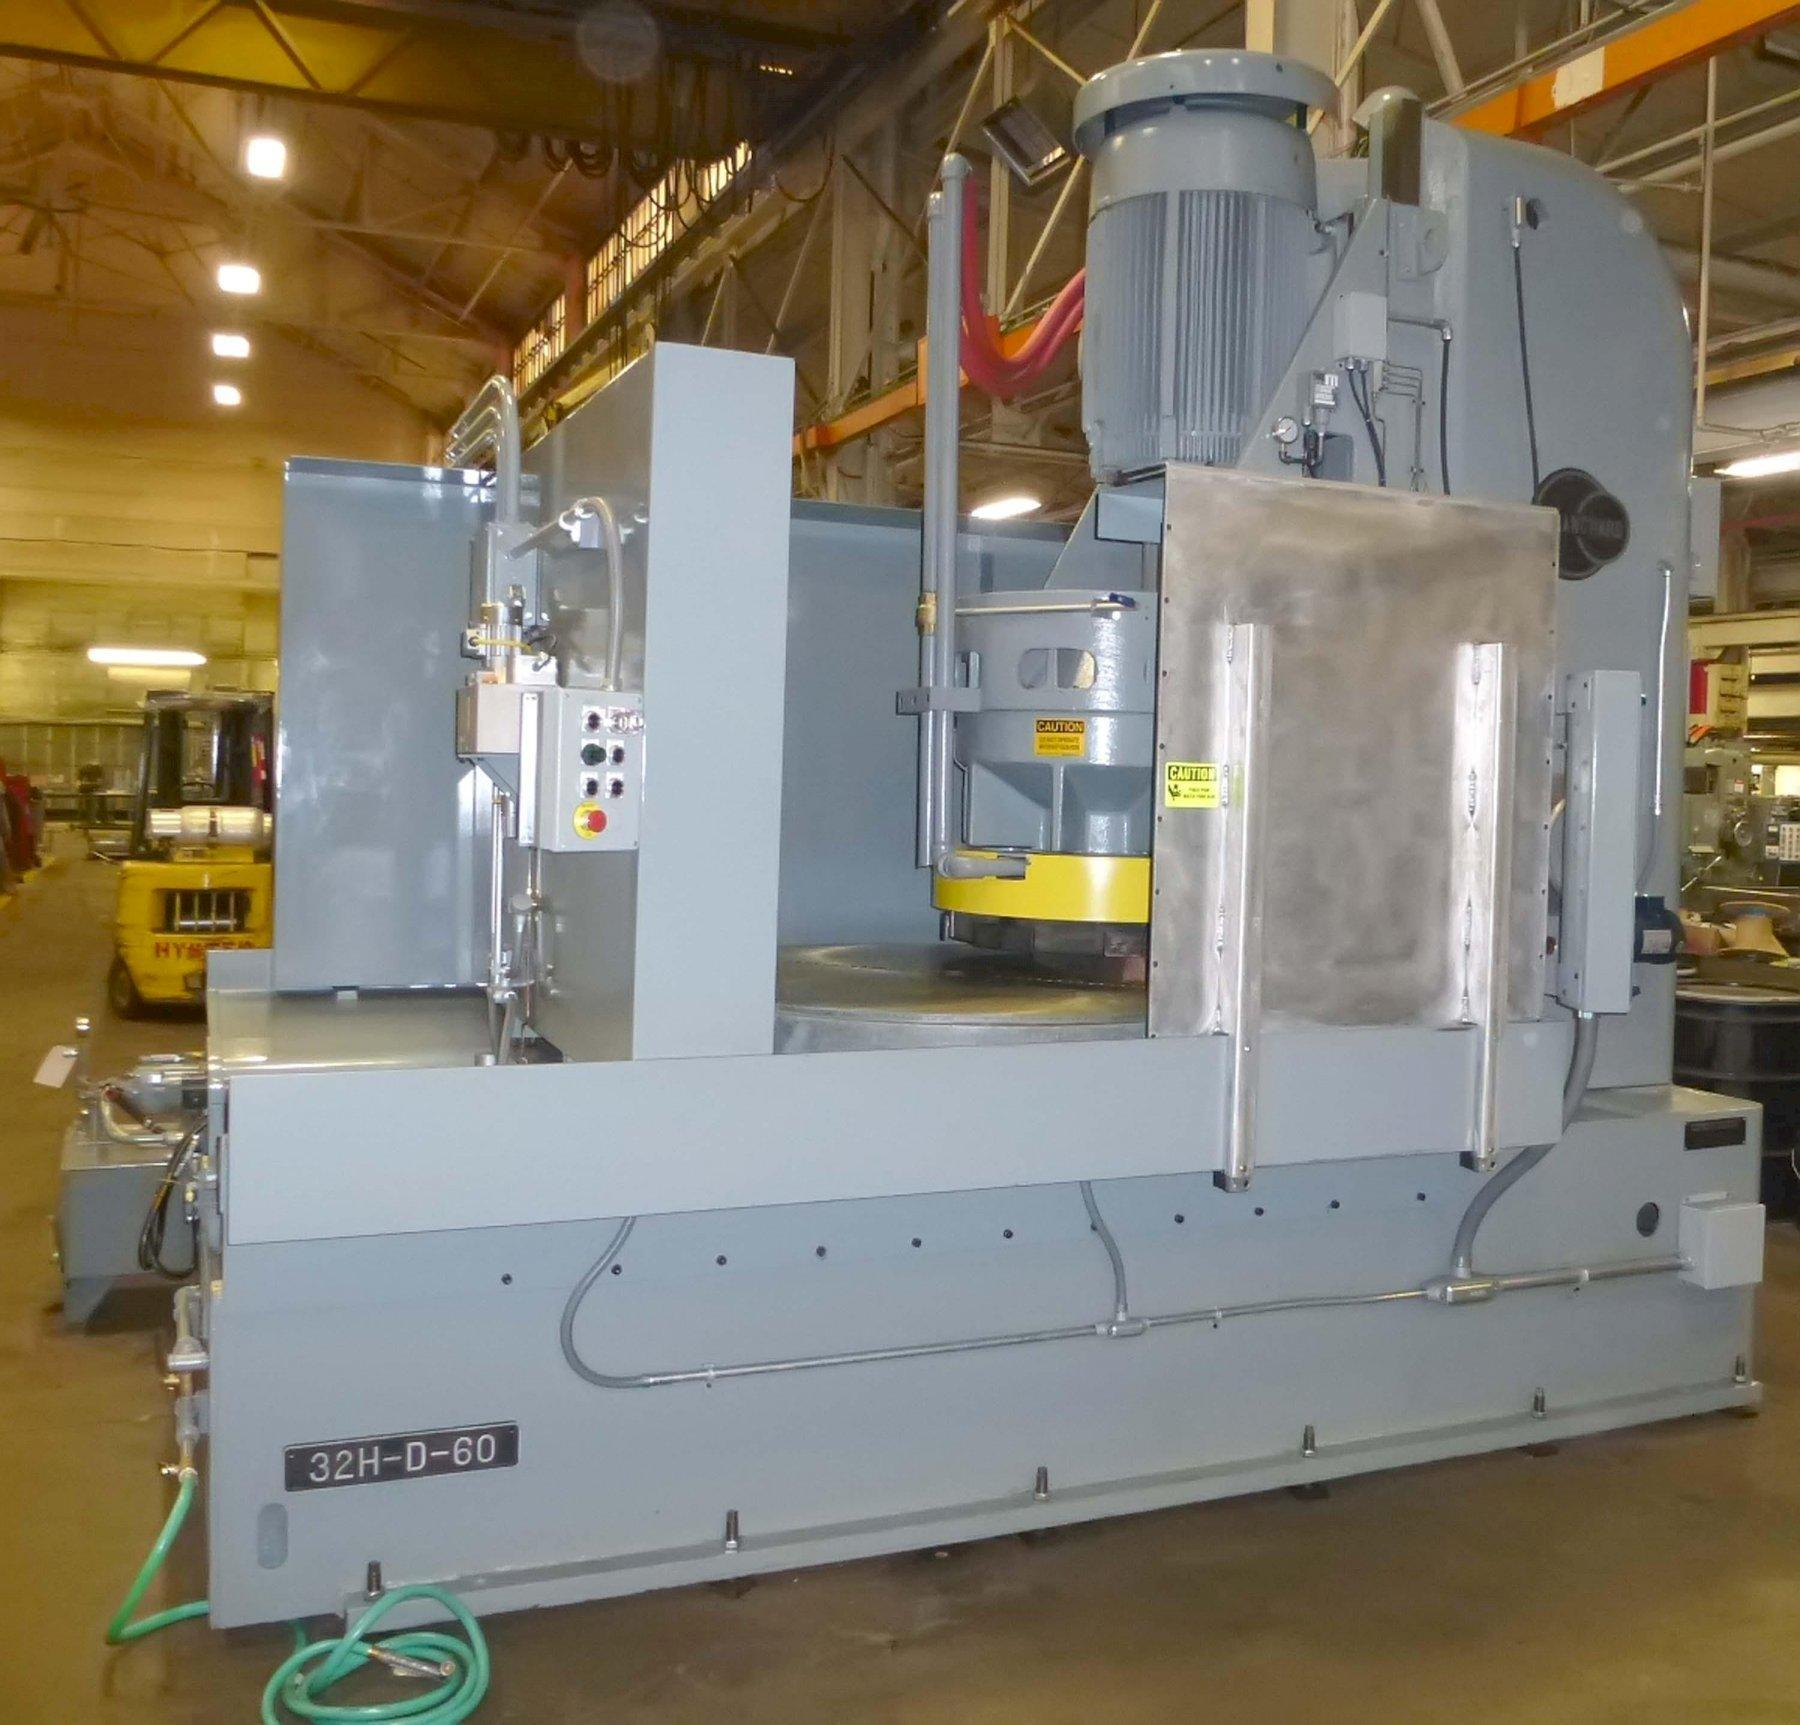 "Blanchard #32HD-60, 60"" Geared Head Vertical Spindle Rotary Surface Grinder, Reman w/ 1 Year Warranty"